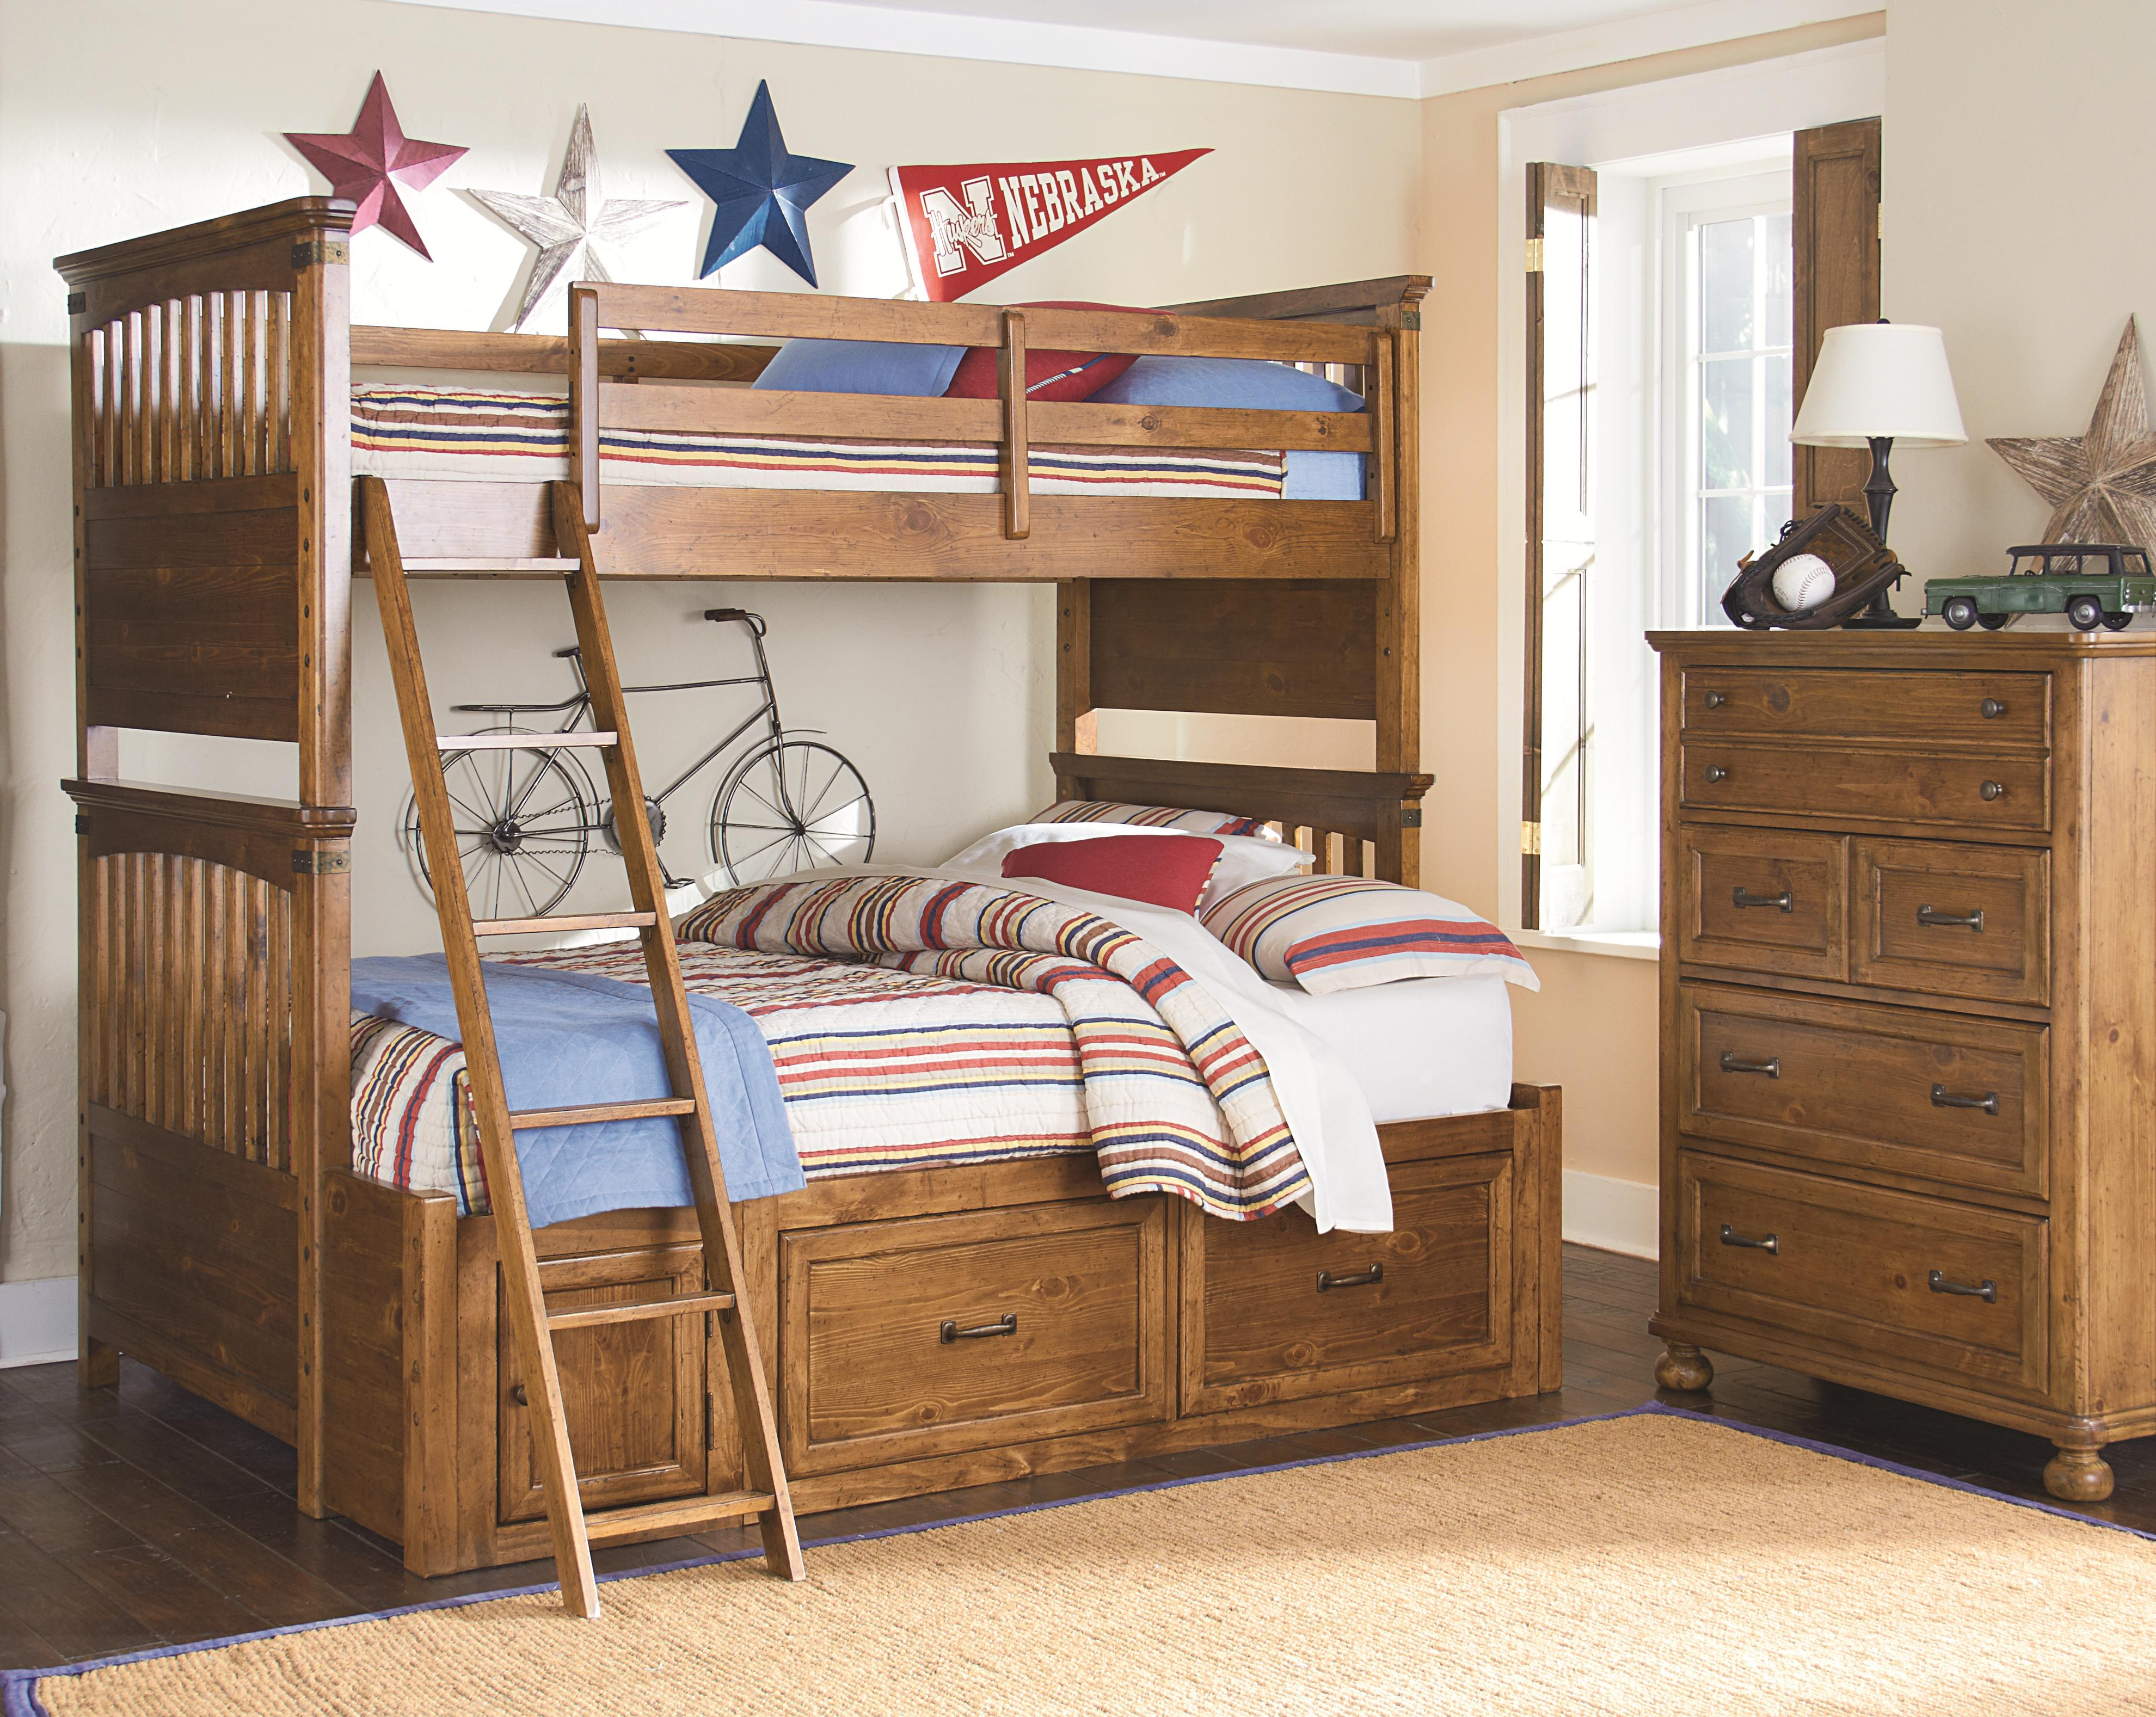 Legacy Classic Kids Bryce Canyon Full Bedroom Group - Item Number: 3900 F Bedroom Group 2